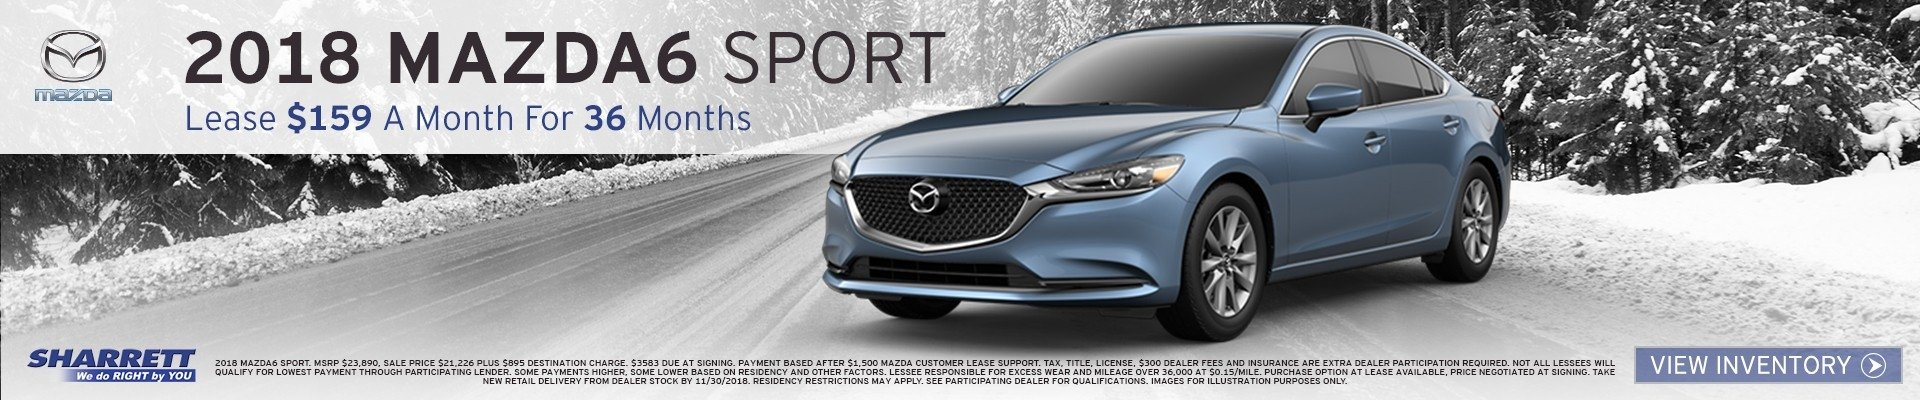 Lease a new 2018 Mazda6 for $159/mo for 36 months